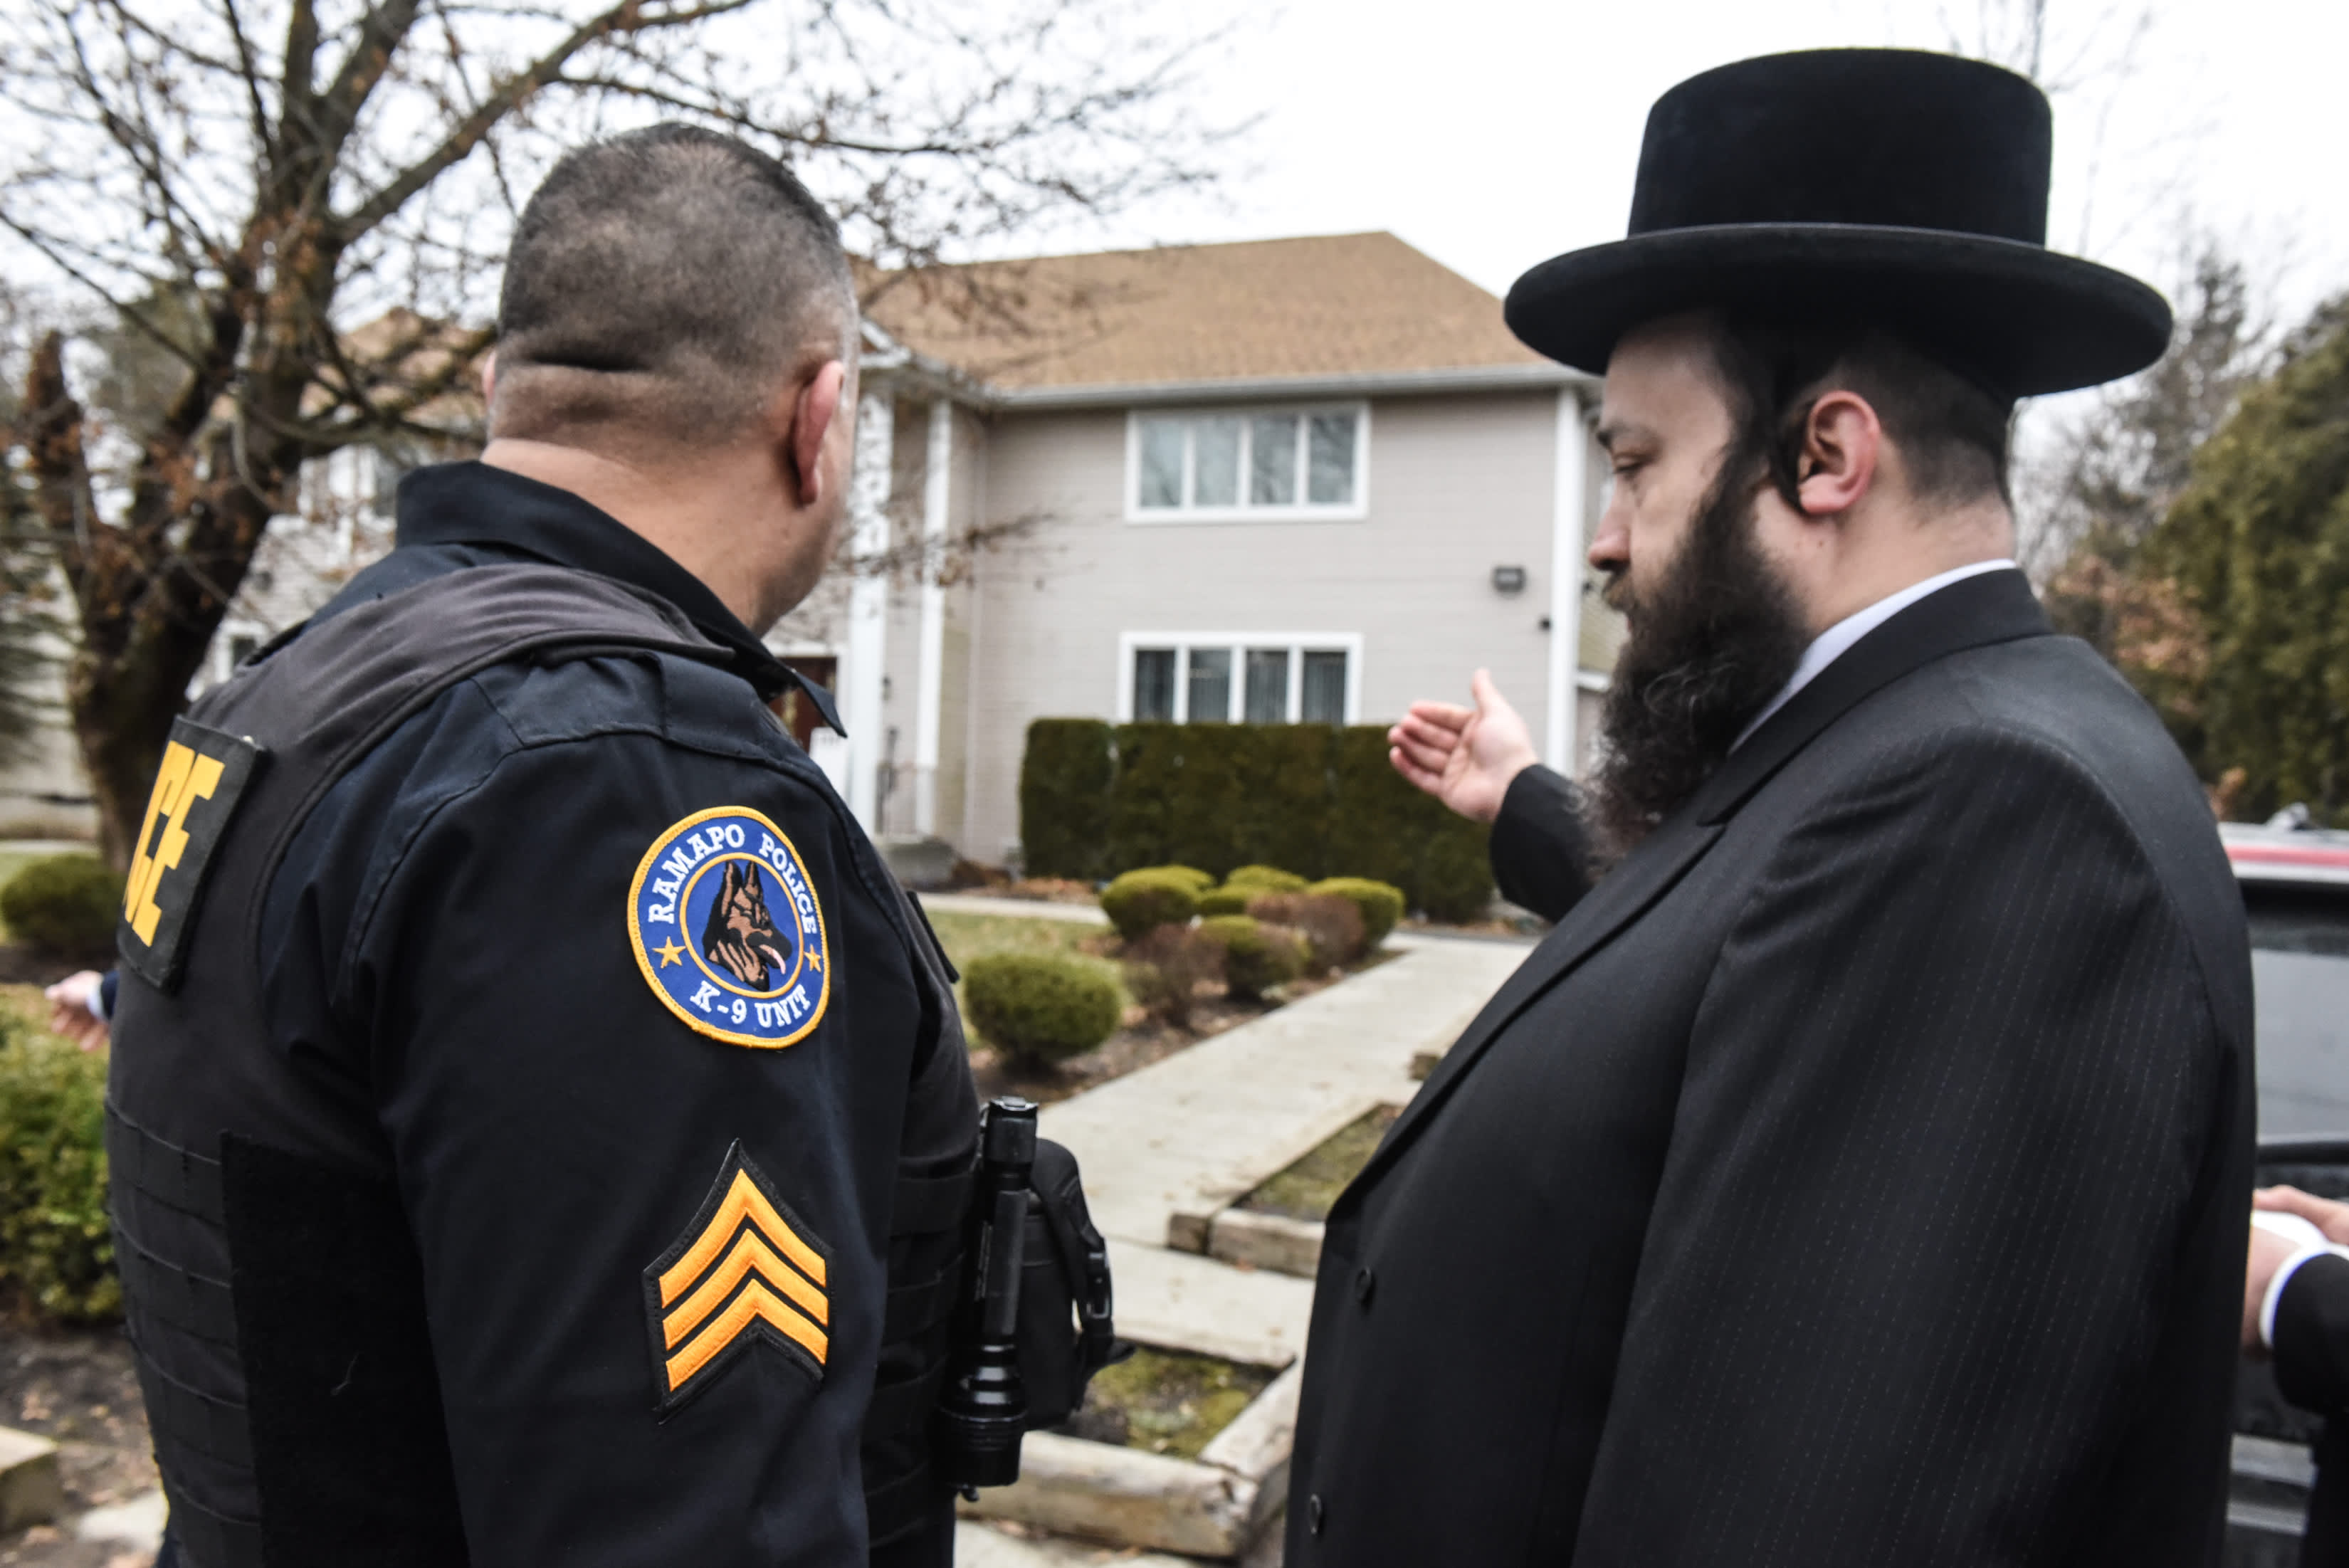 Jewish community grapples with how to stem growing anti-Semitic violence